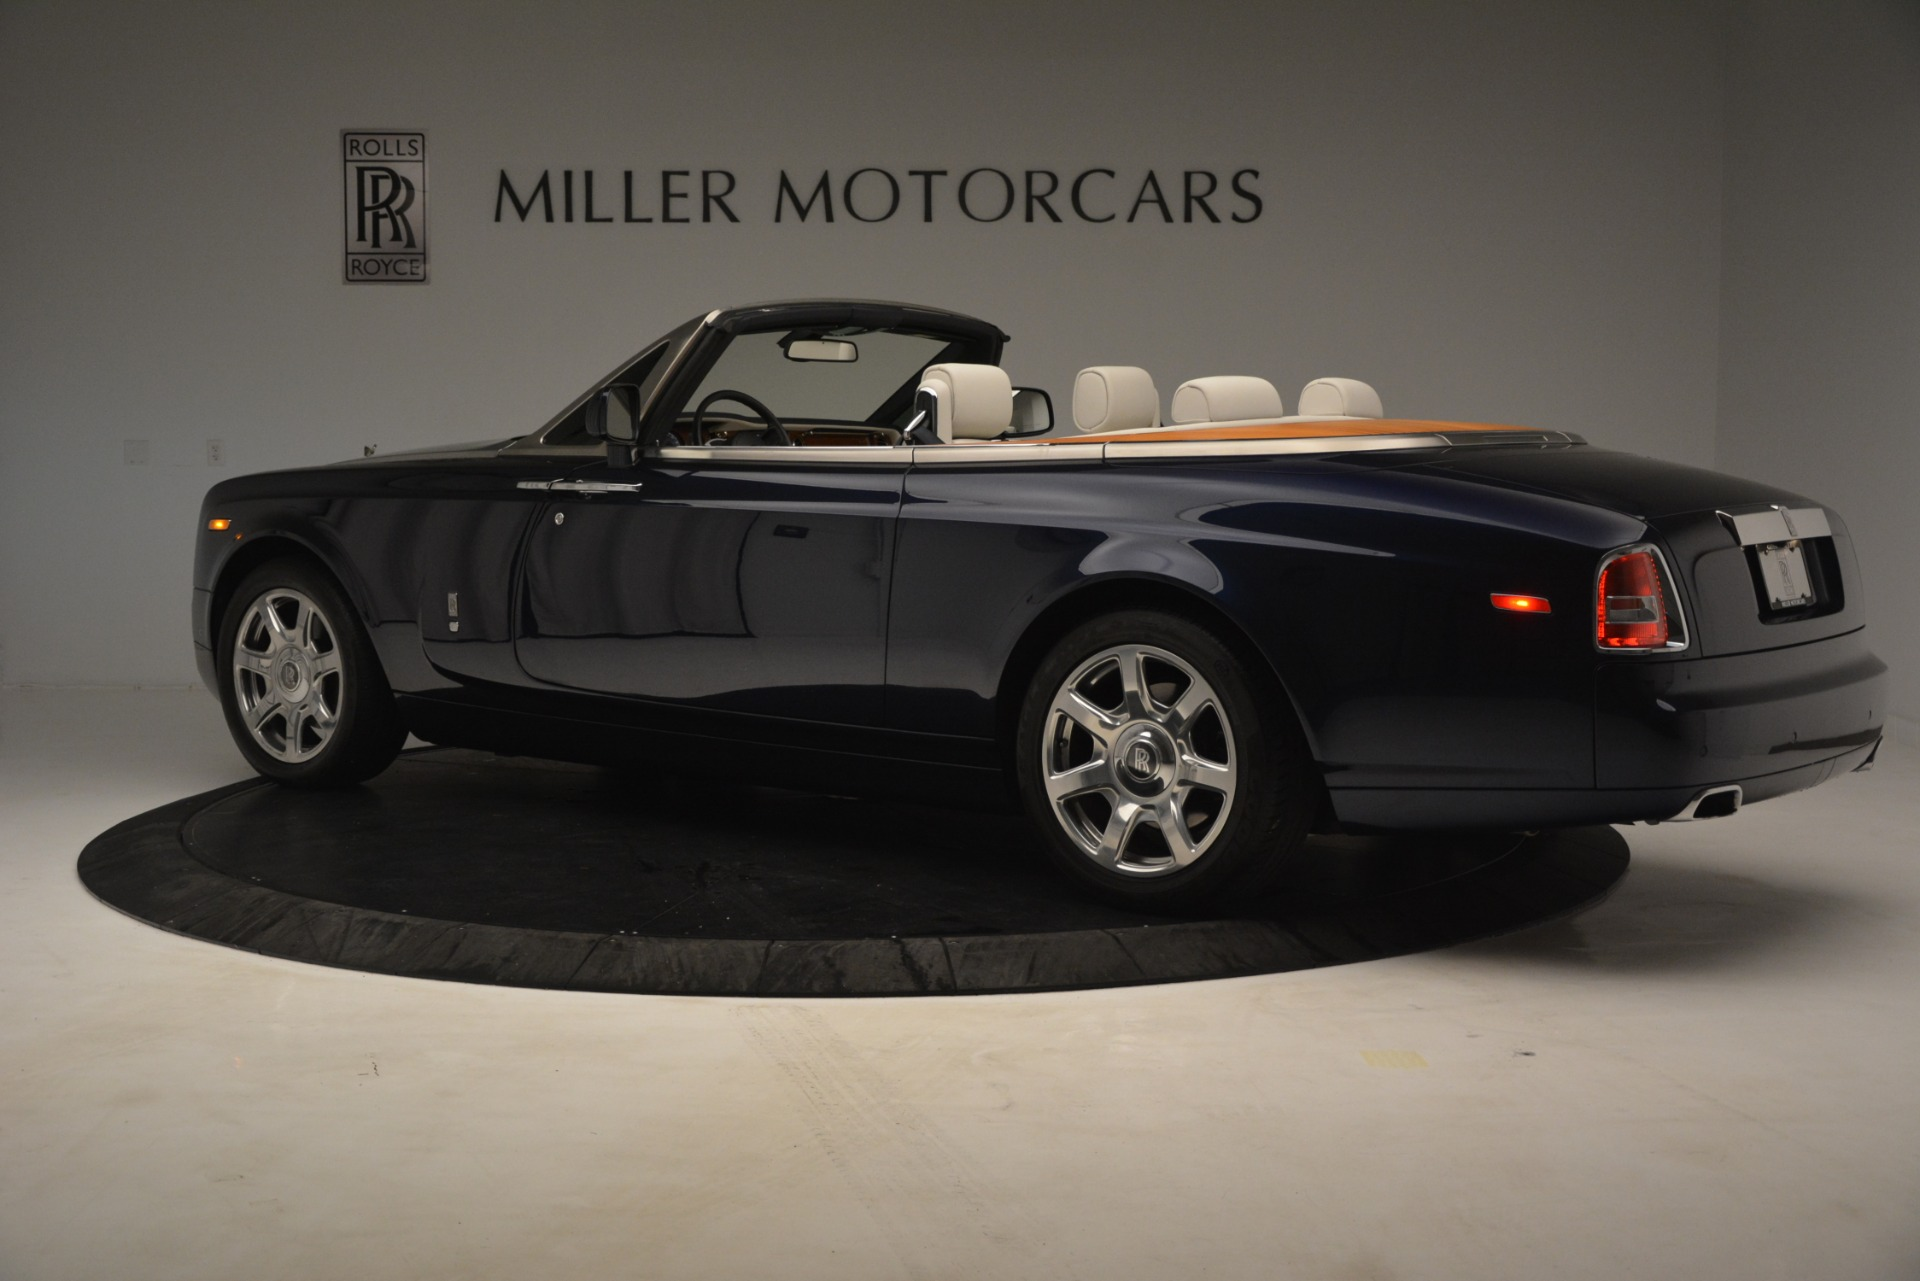 Used 2013 Rolls-Royce Phantom Drophead Coupe  For Sale In Westport, CT 2999_p6